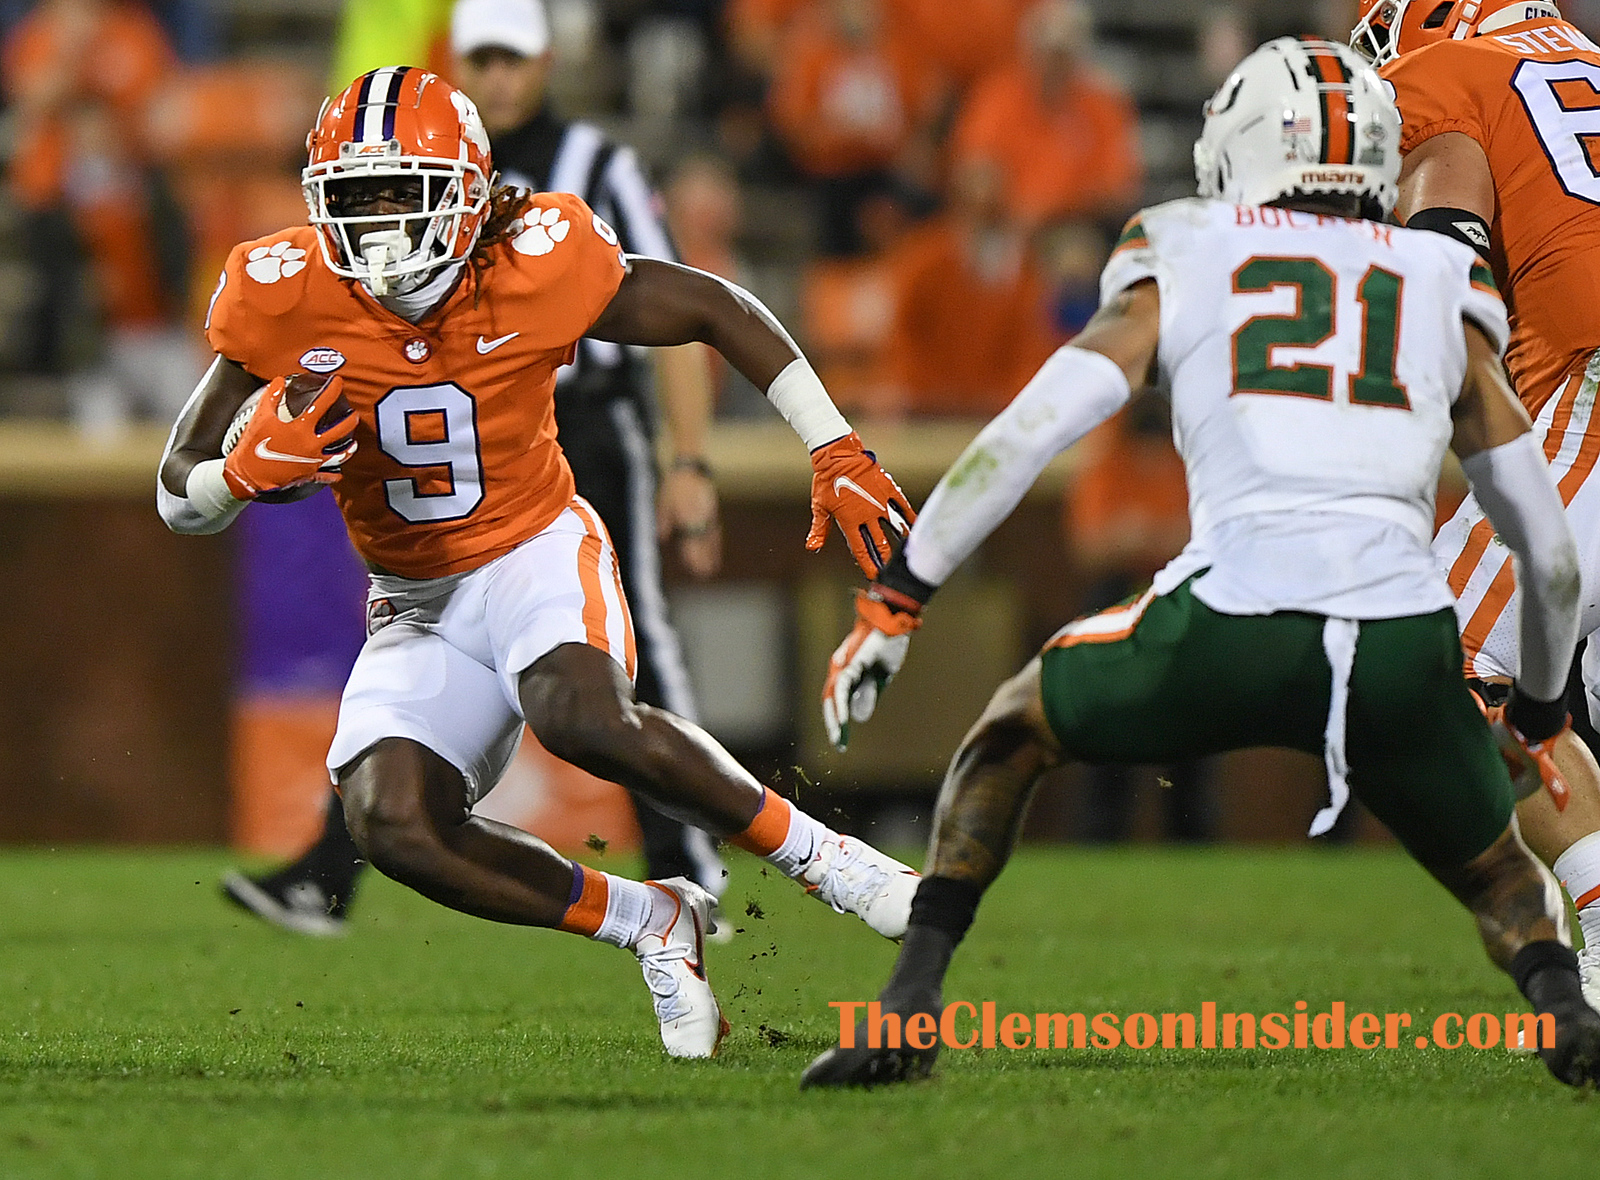 Clemson running back Travis Etienne (9) carries against Miami during the 1st quarter during Clemson's game against the University of Miami at Clemson's Memorial Stadium Saturday, October 10, 2020. Bart Boatwright/The Clemson Insider